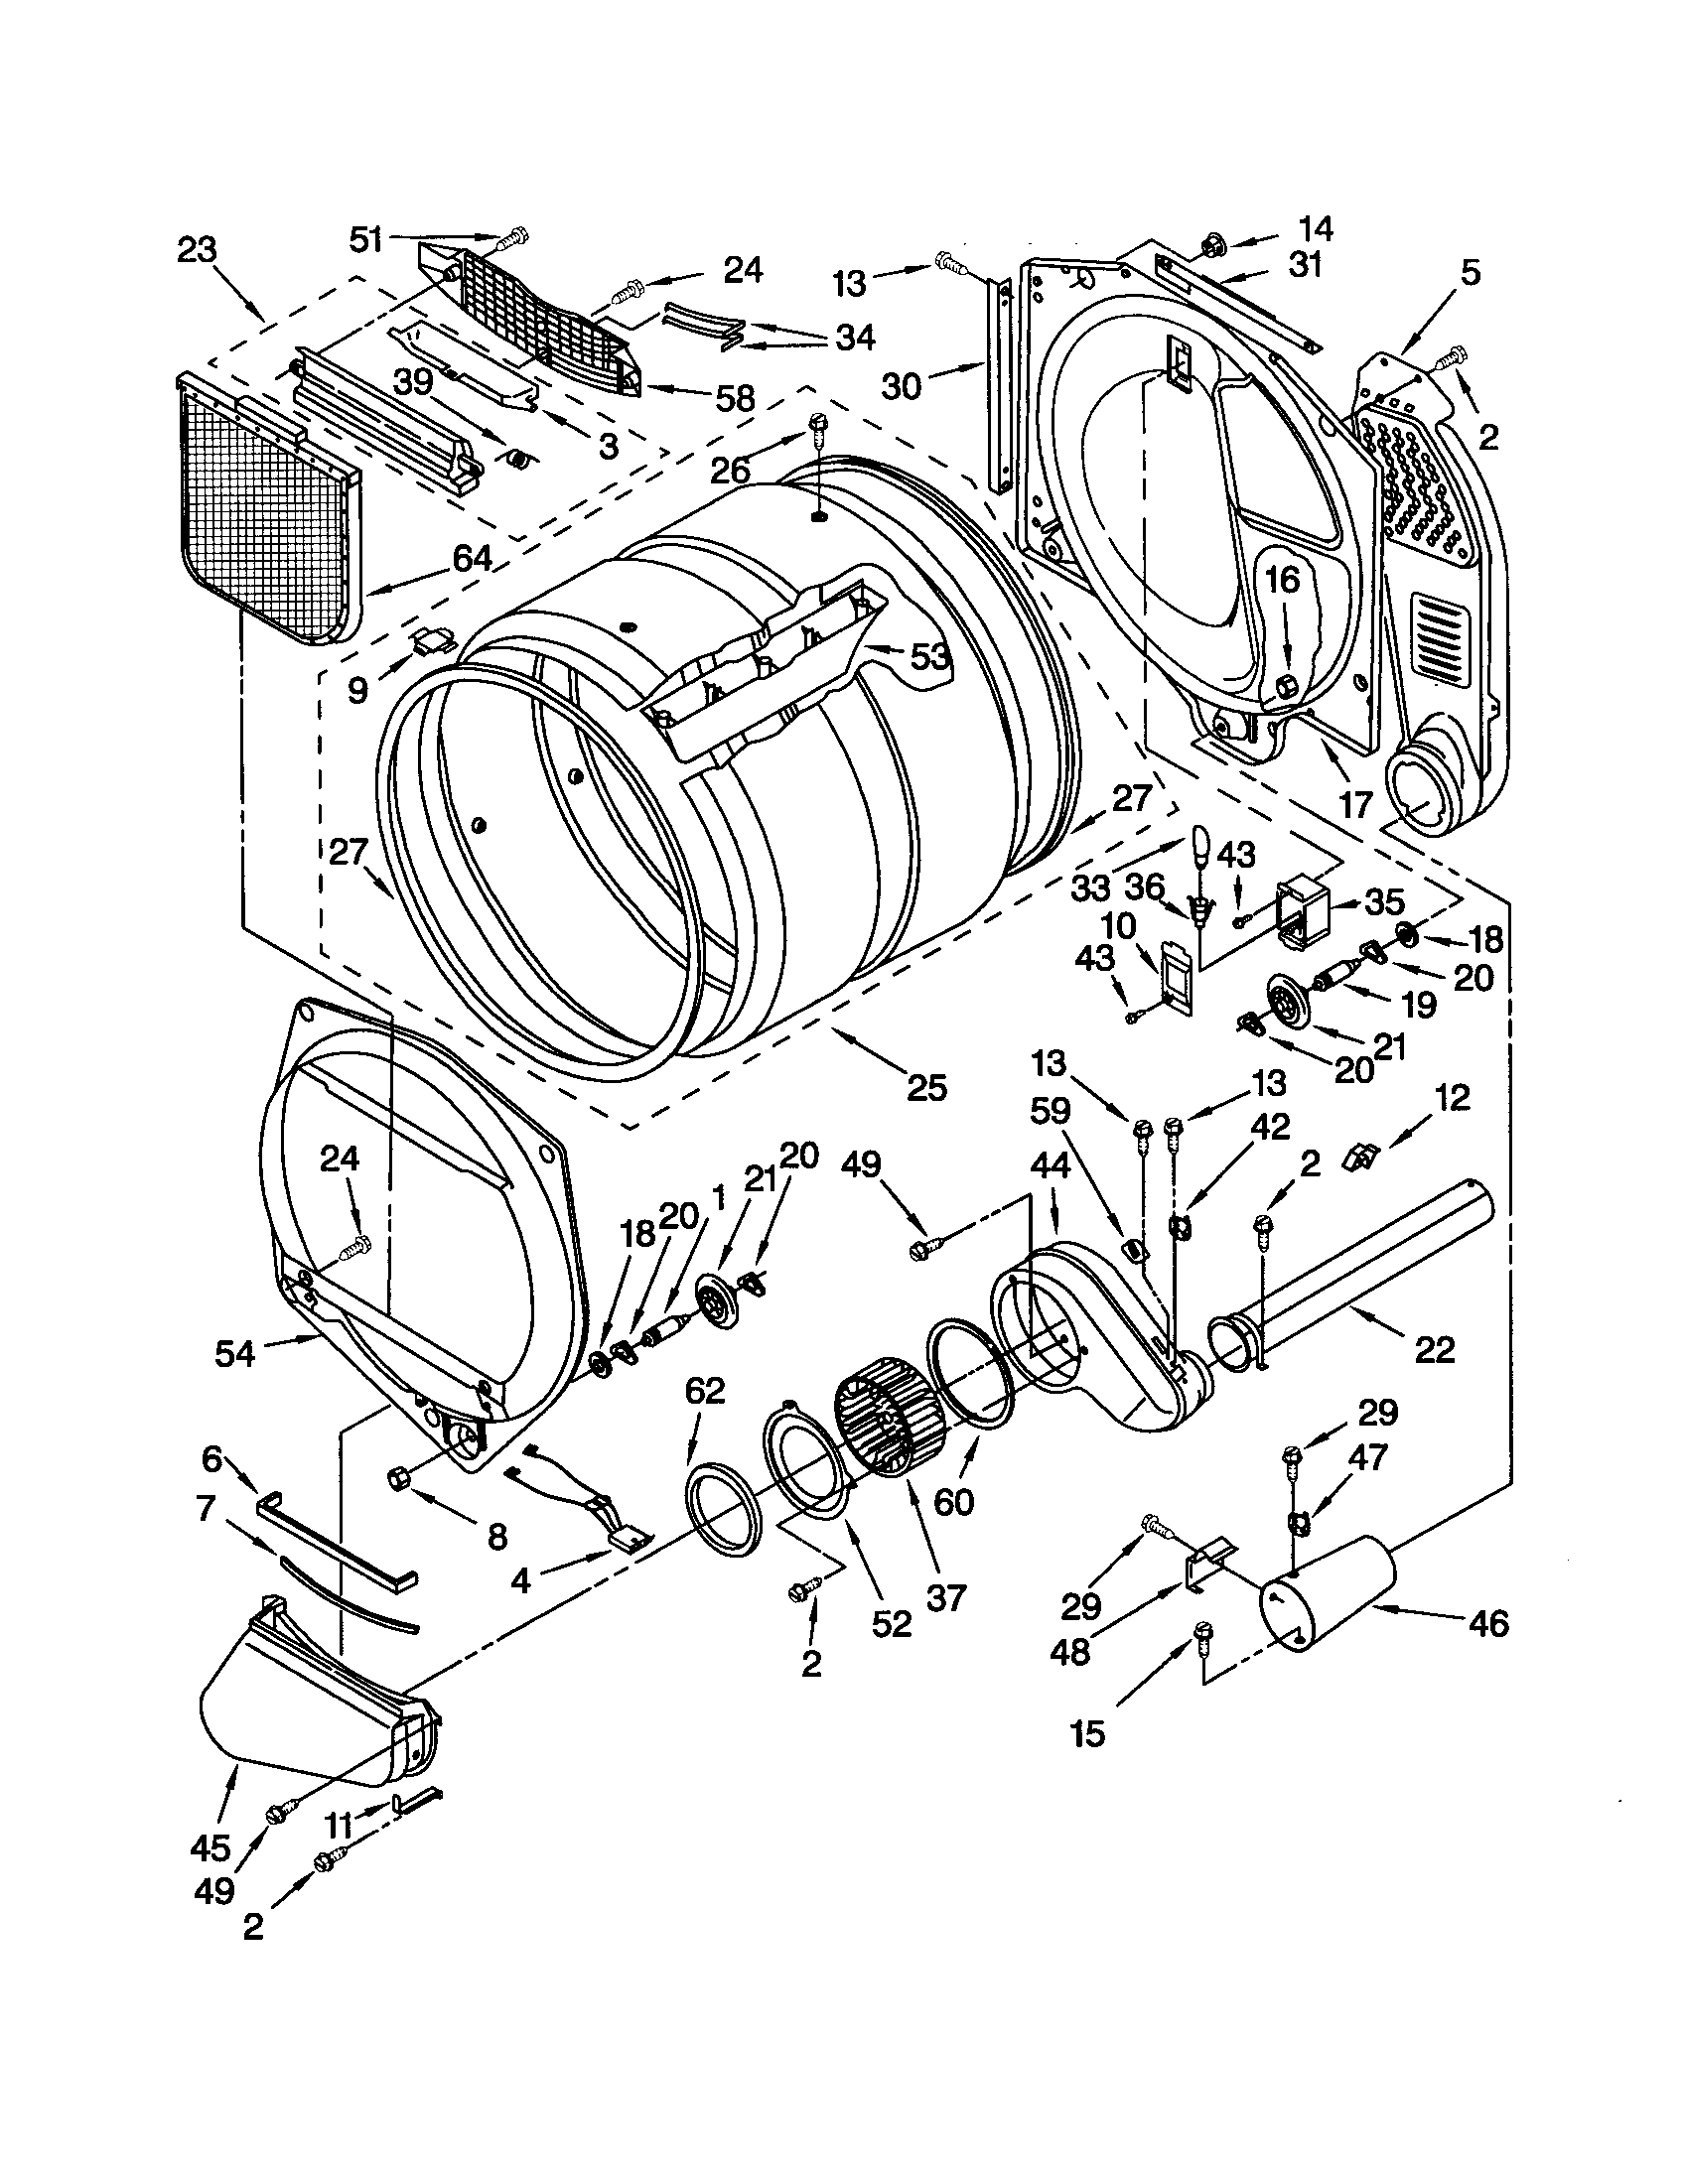 Whirlpool Dryer Schematic